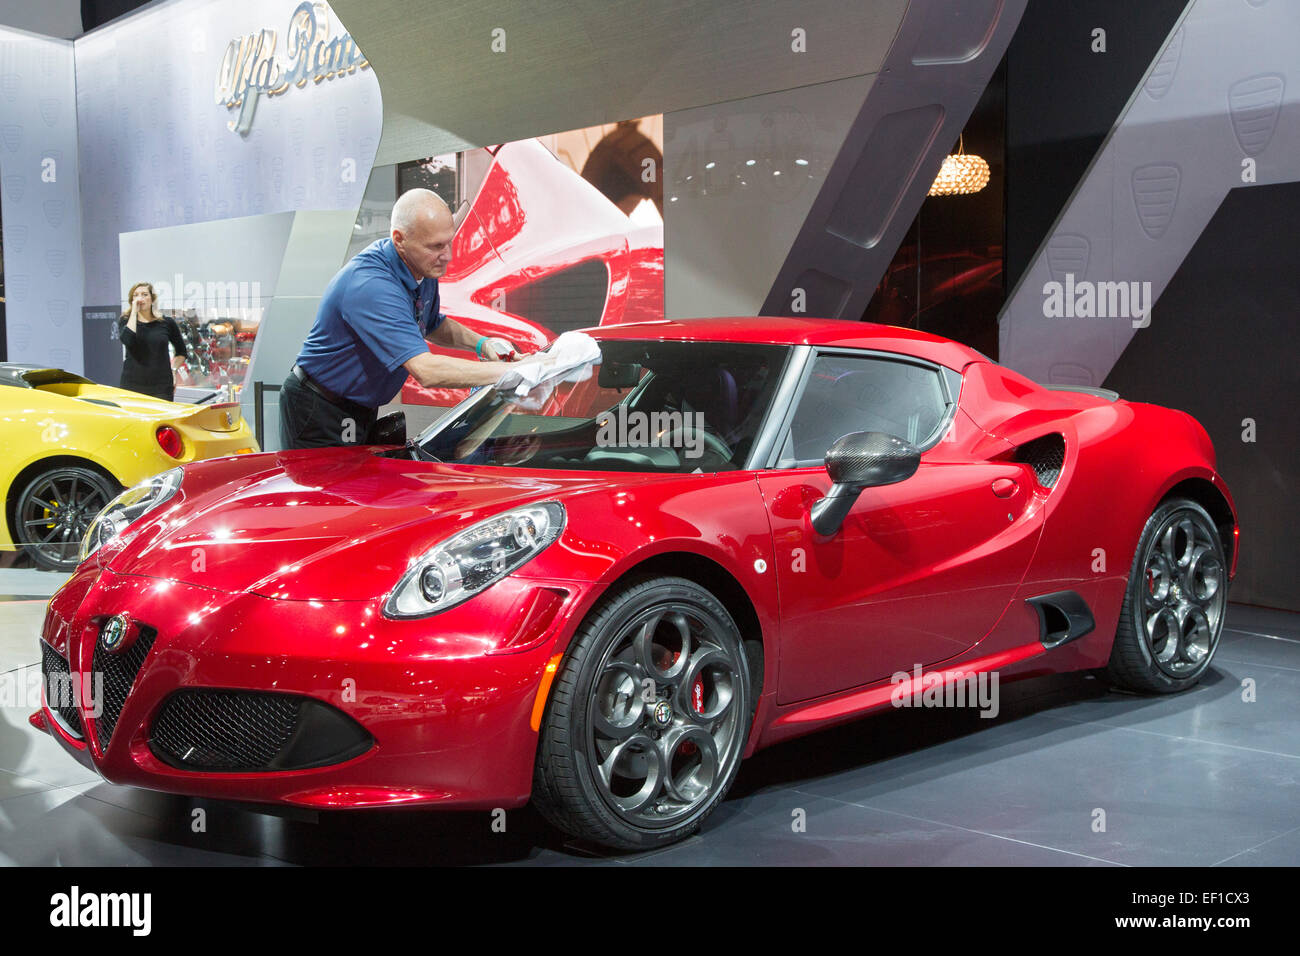 Alfa Romeo 4c Engine Diagram Stockfotos Bilder Alamy Detroit Michigan Ein Arbeiter Poliert Der Auf North American International